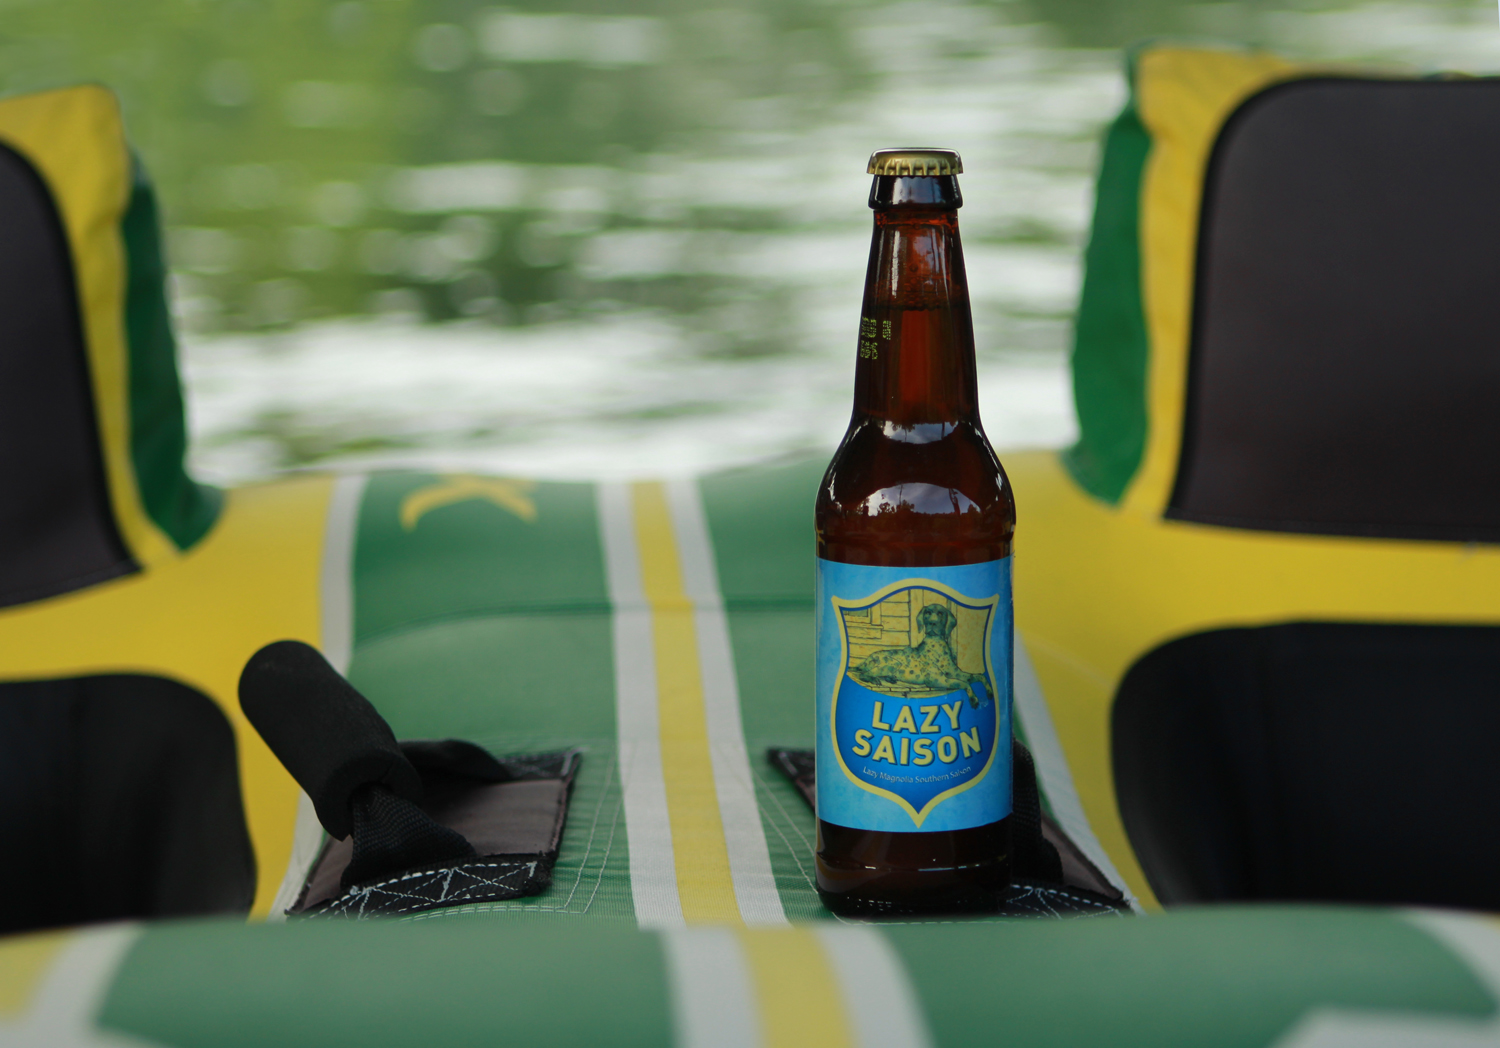 Lazy Summer Saison is a refreshing farmhouse ale summertime beer.